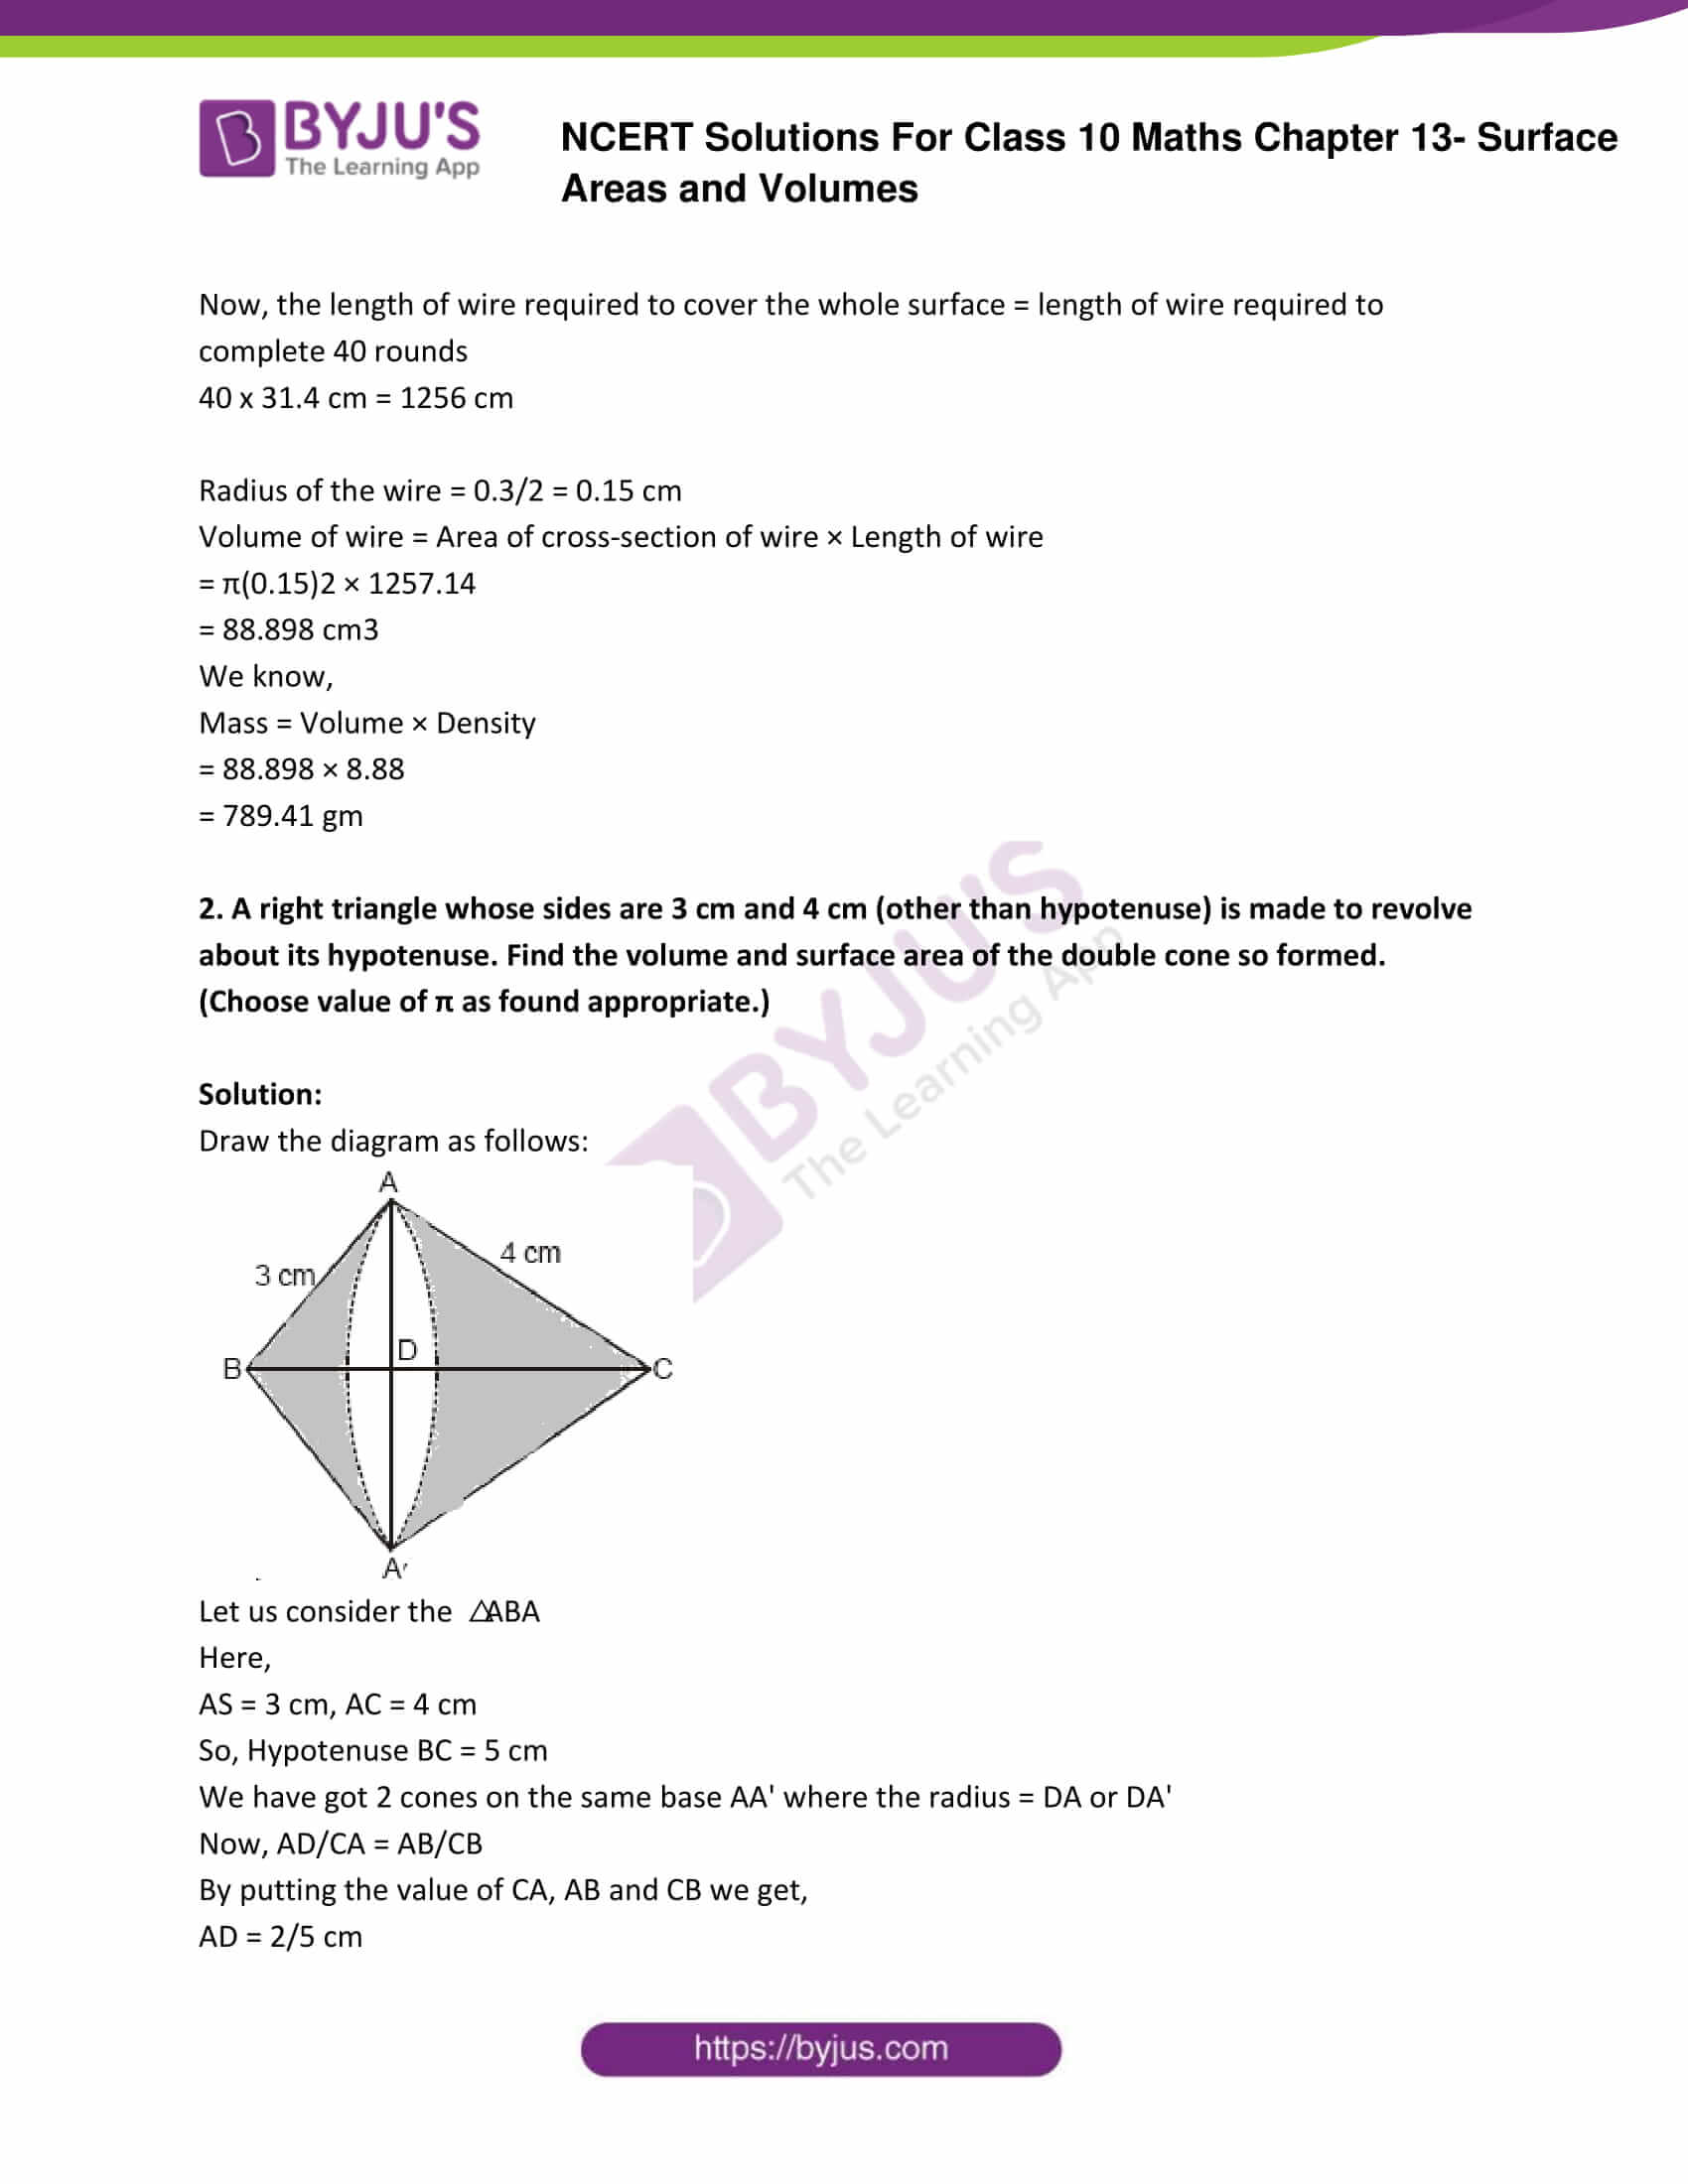 NCERT Solutions Class 10 Maths Chapter 13 Surface Areas and Volumes Part 25